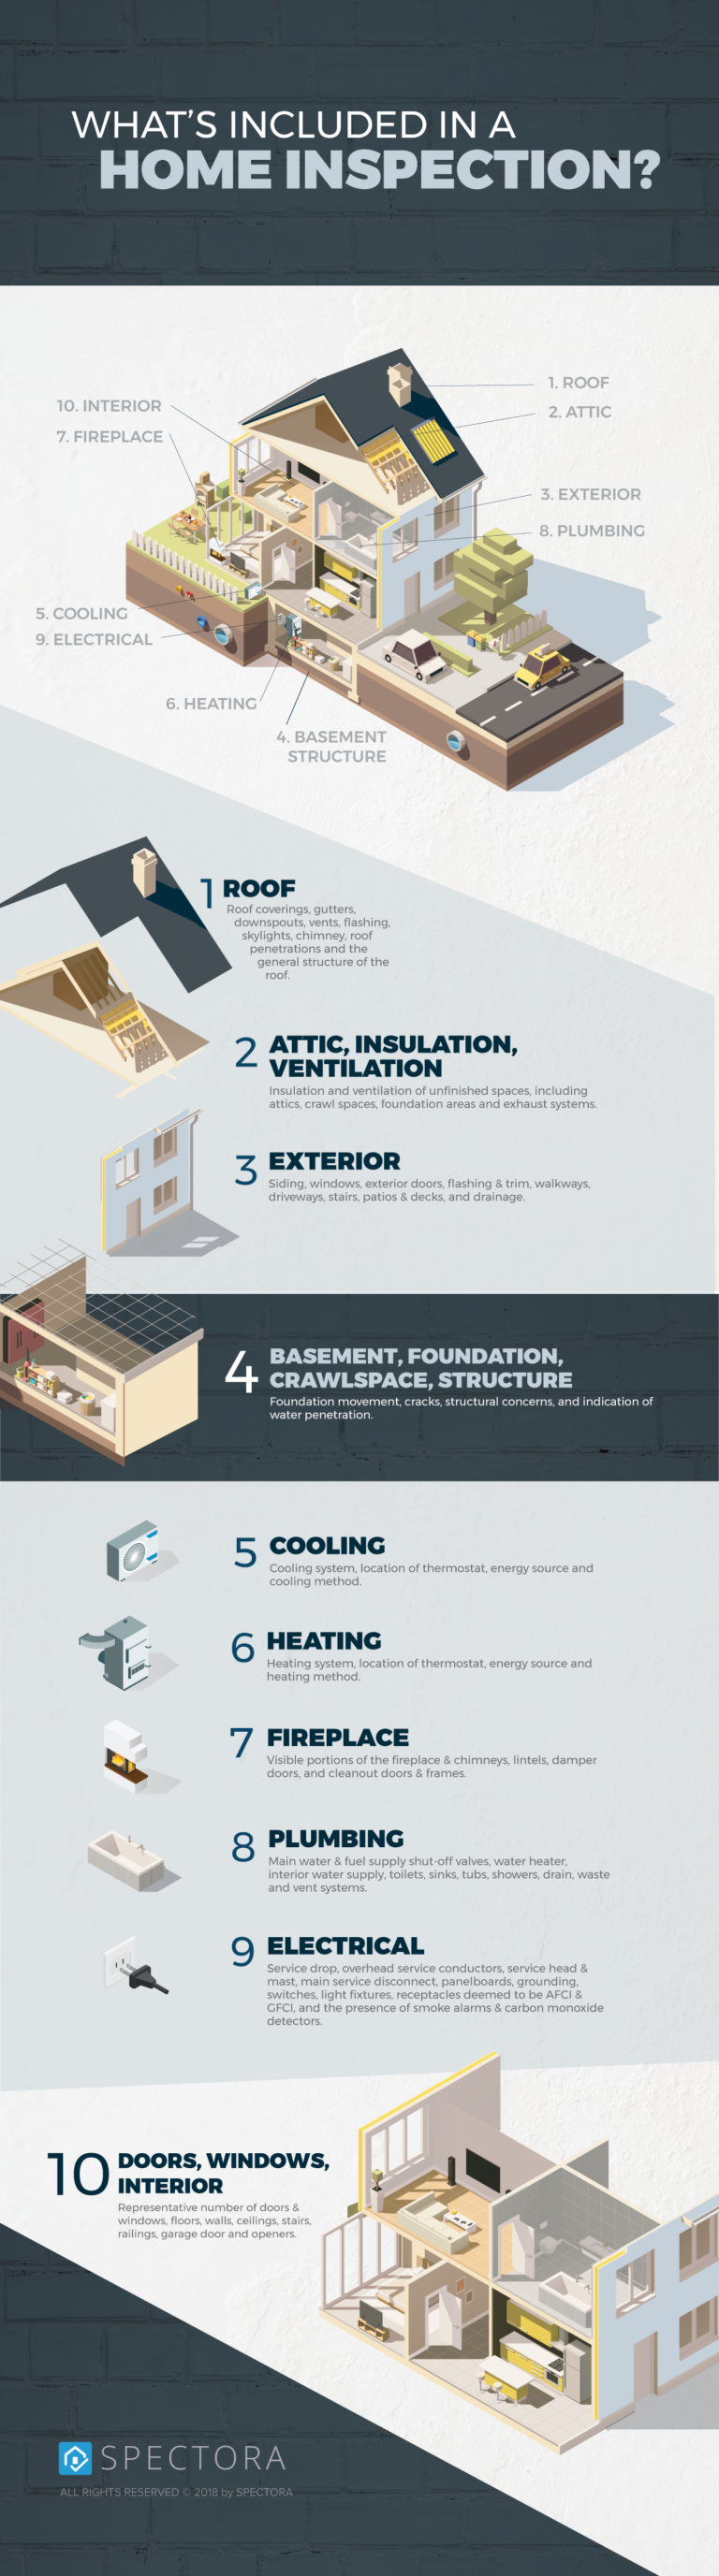 What is included in a home inspection